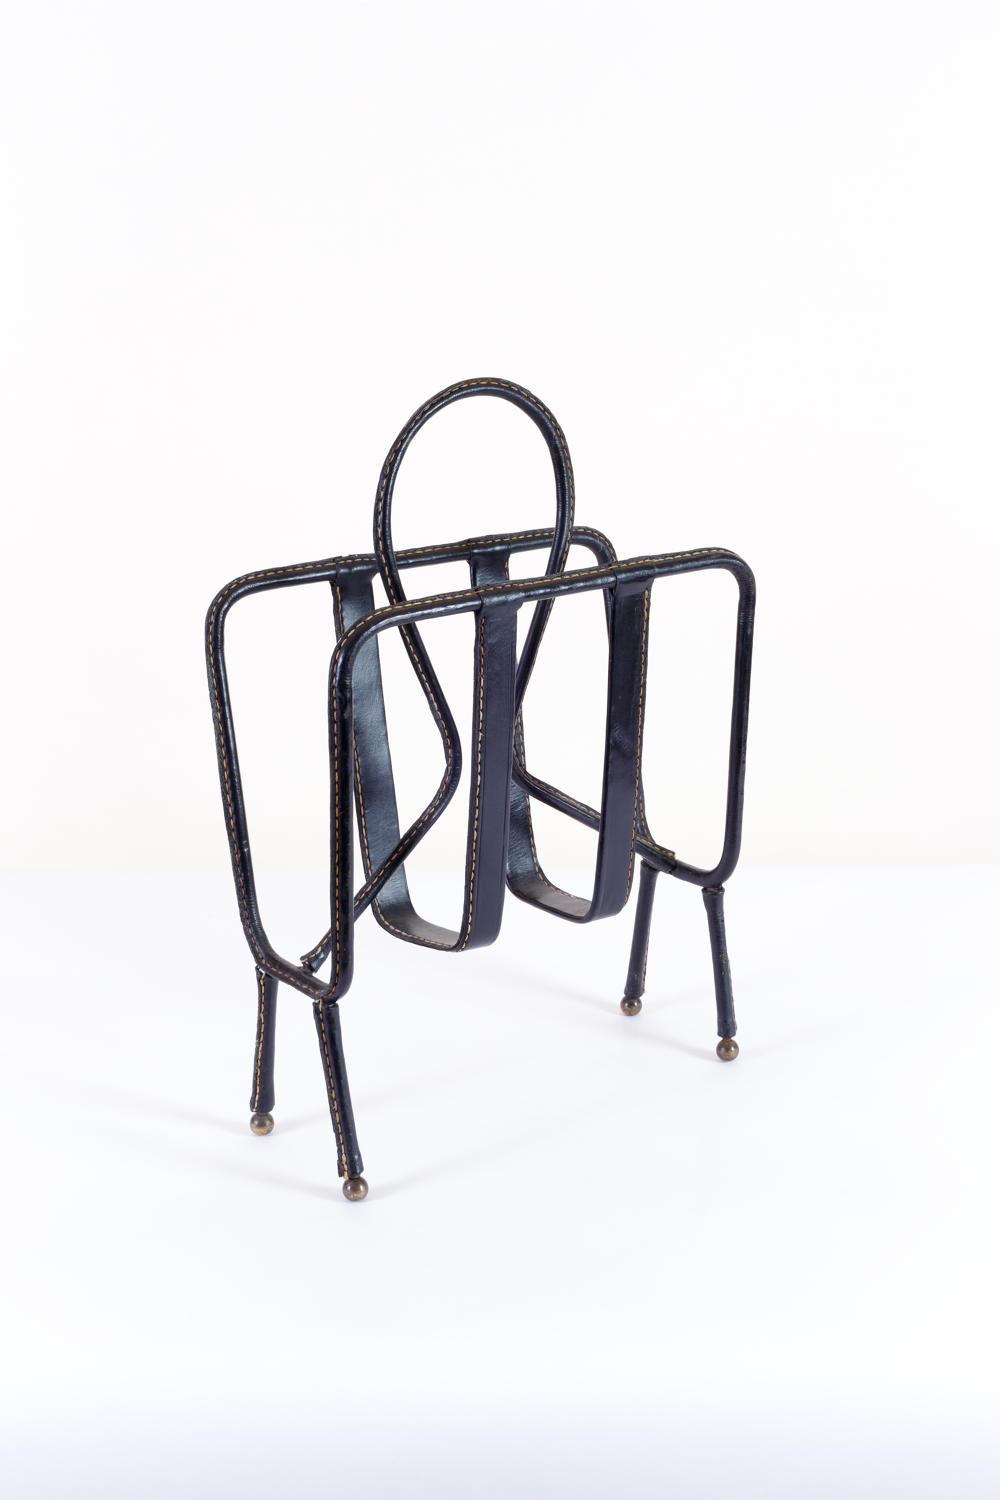 Magazine rack in stitched black leather